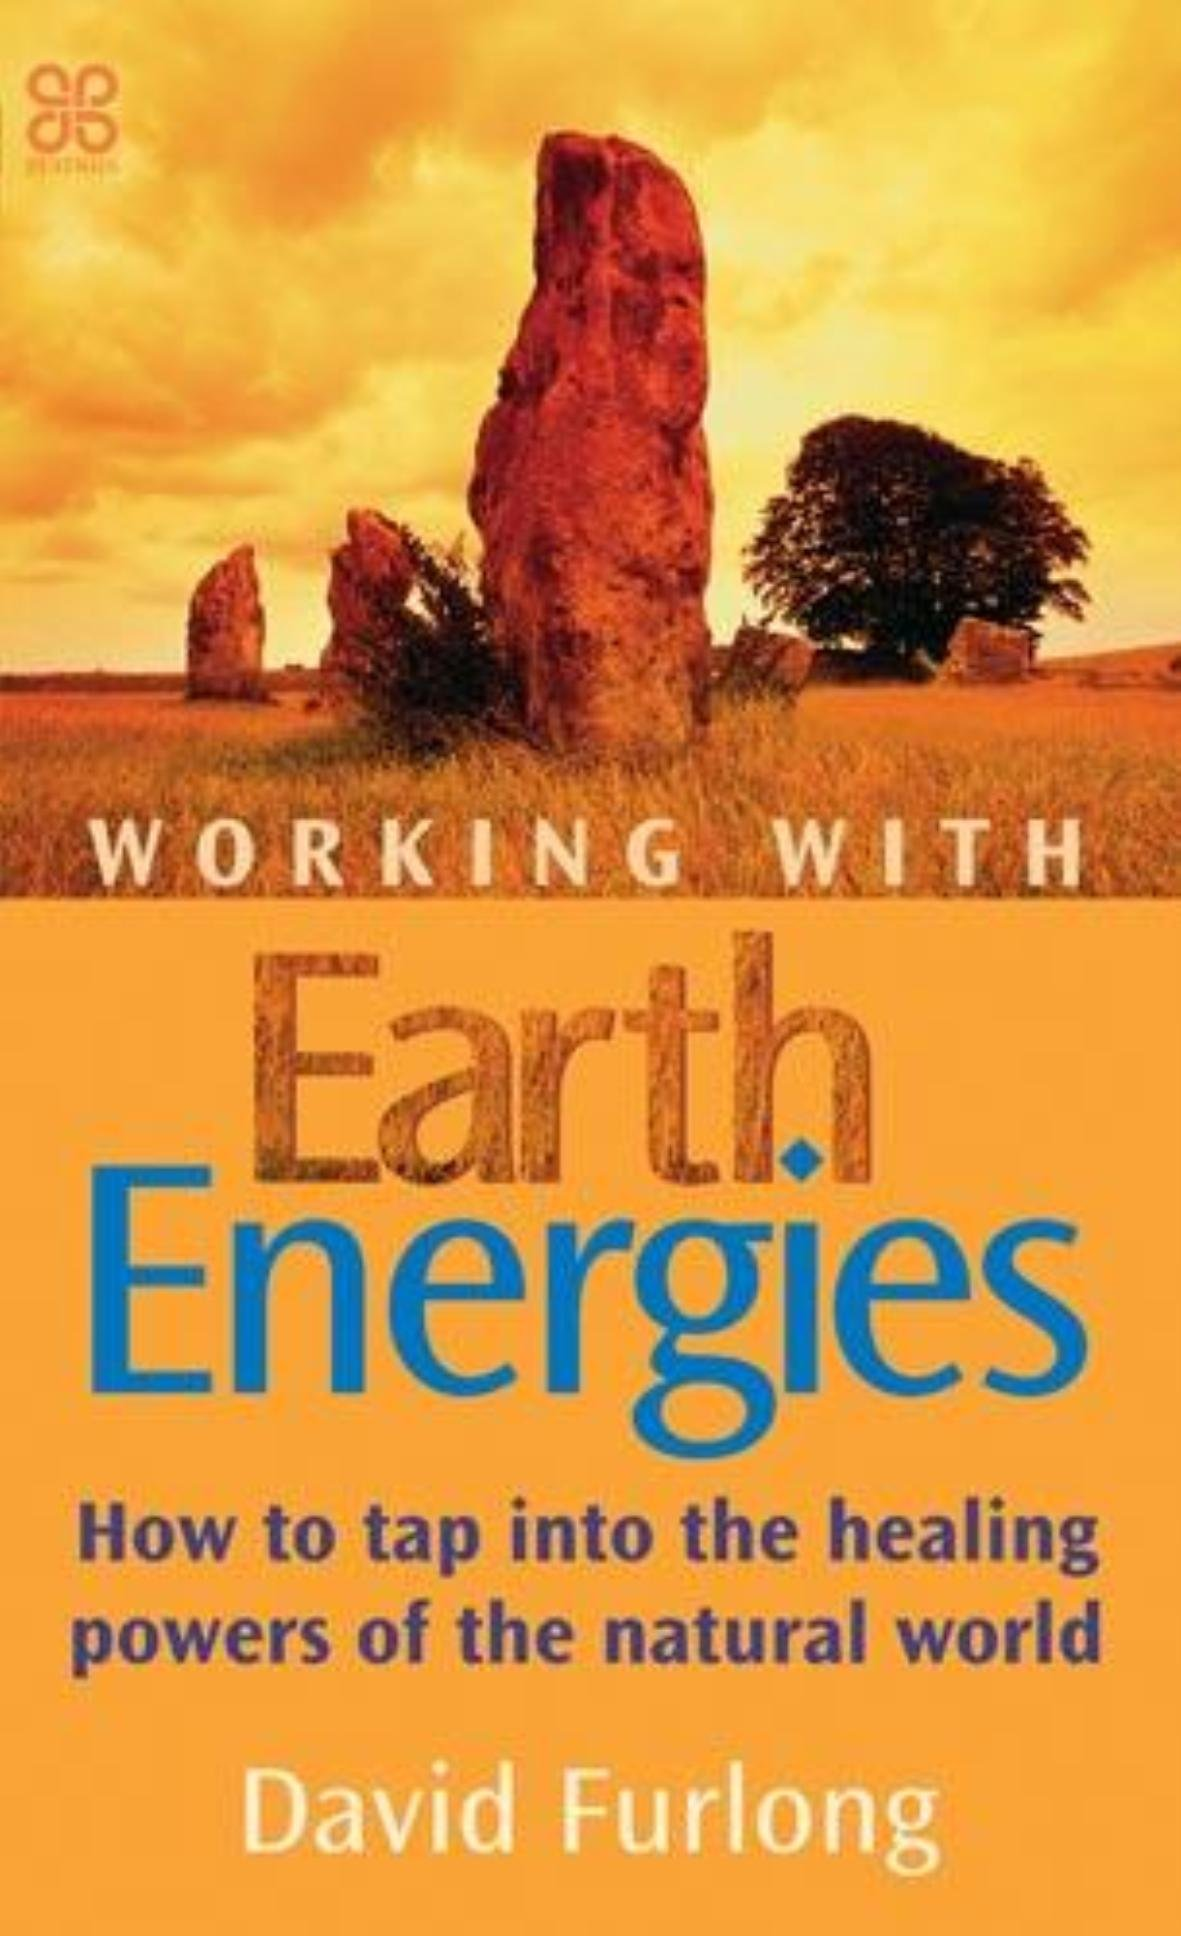 Read Online Working with Earth Energies: How to Tap Into the Healing Powers of the Natural World PDF